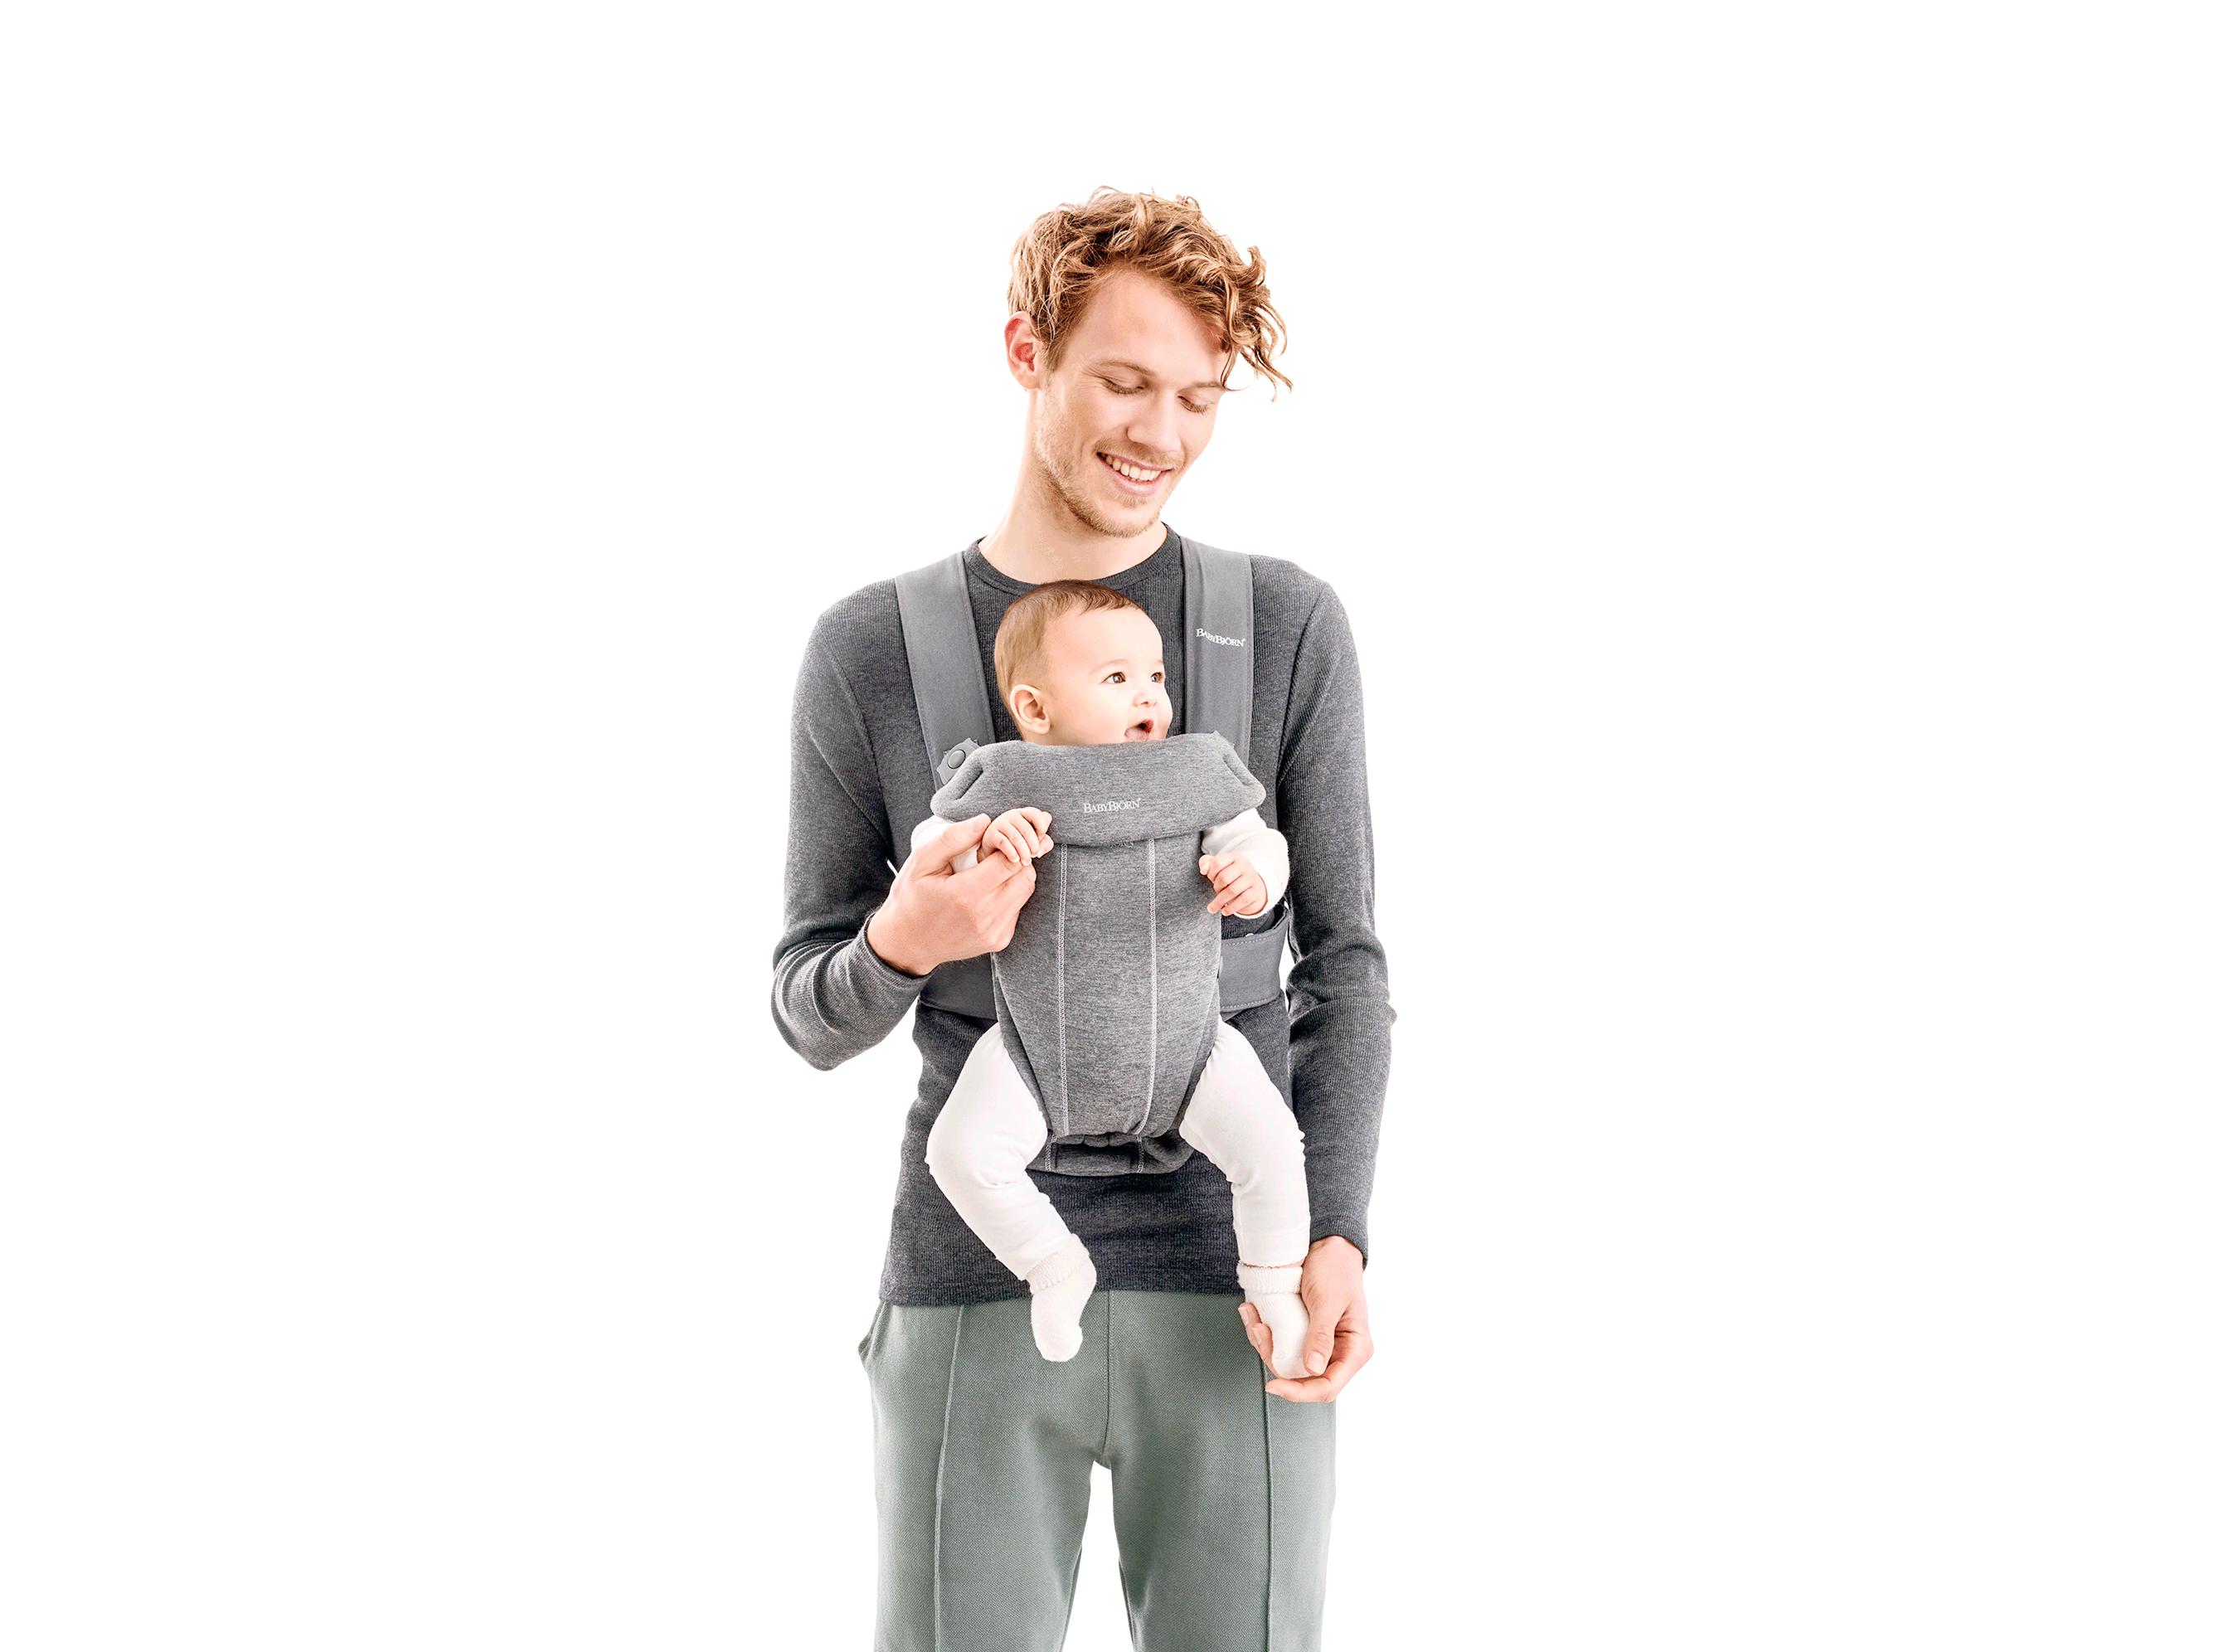 13f24dbb0 Baby Carrier Mini – perfect for a newborn | BABYBJÖRN